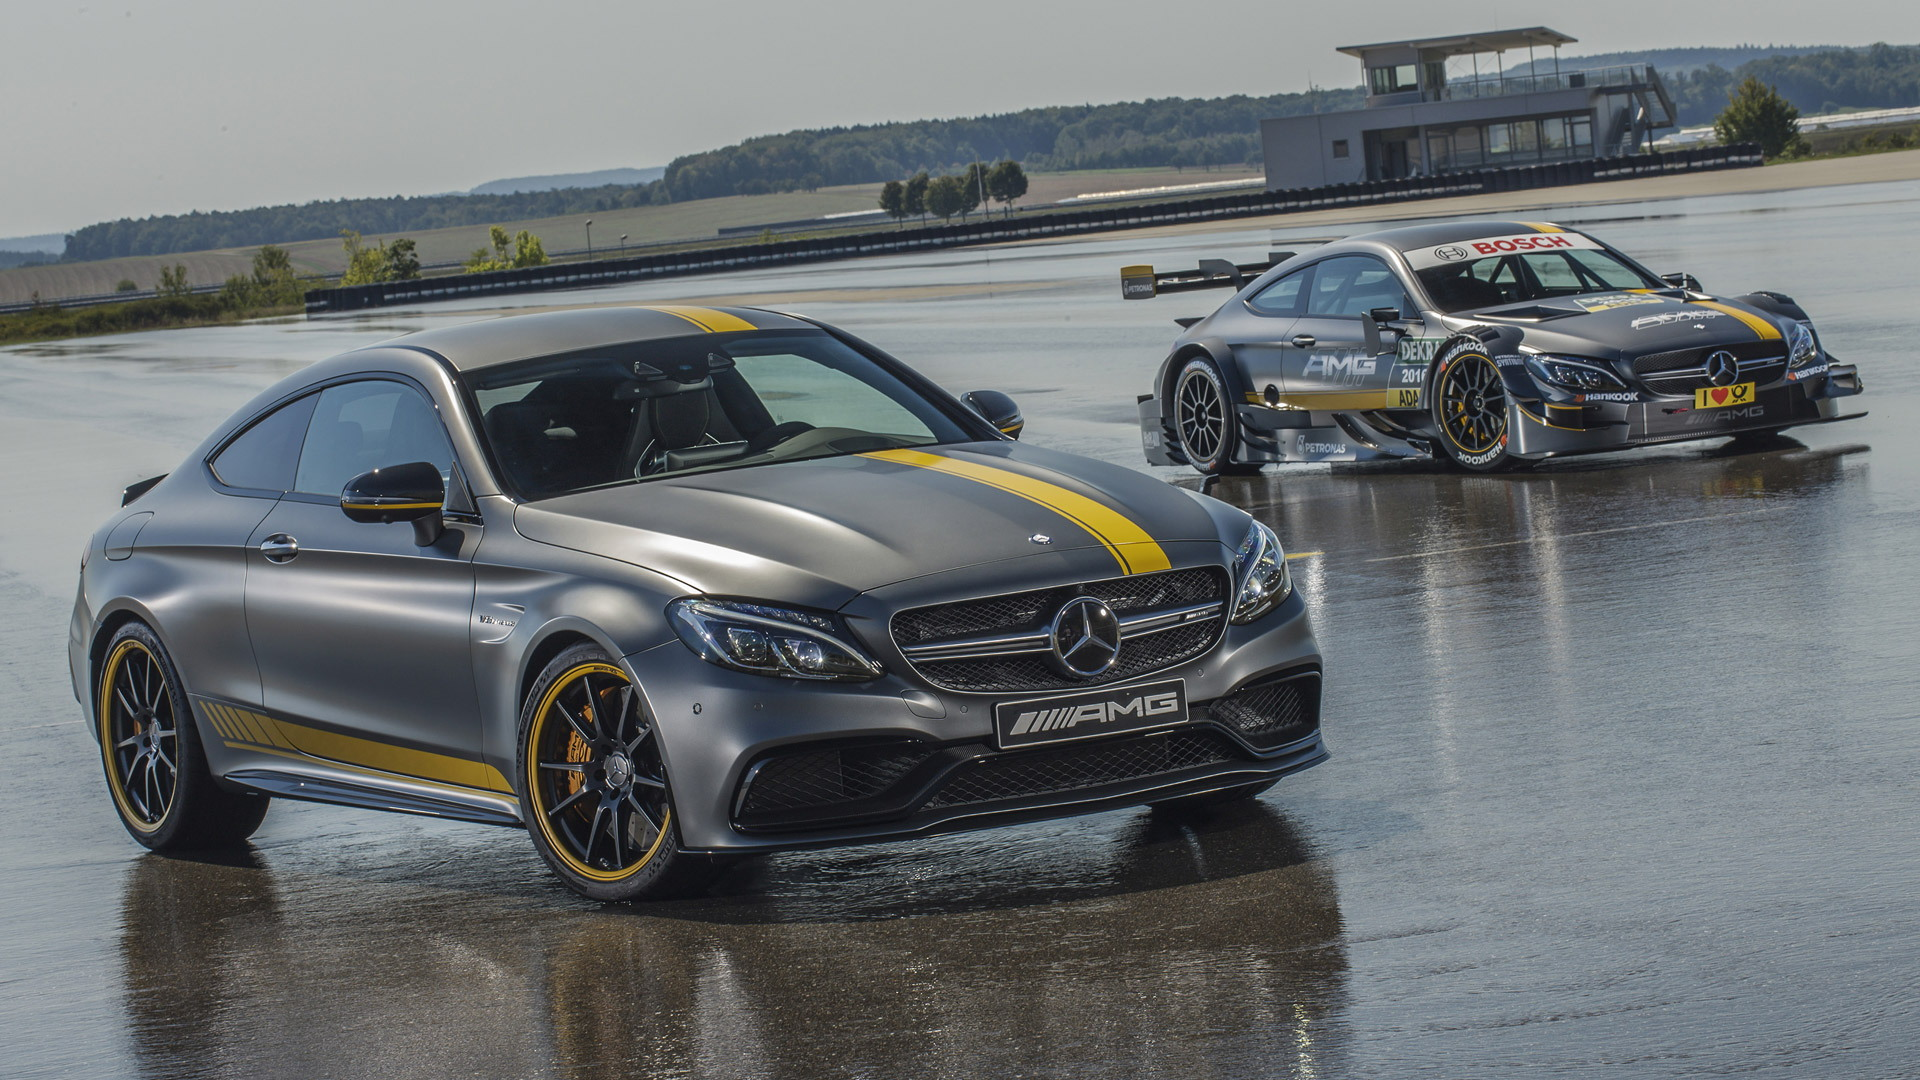 2017 mercedes amg c63 coupe edition 1 and 2016 c63 dtm racer revealed. Black Bedroom Furniture Sets. Home Design Ideas